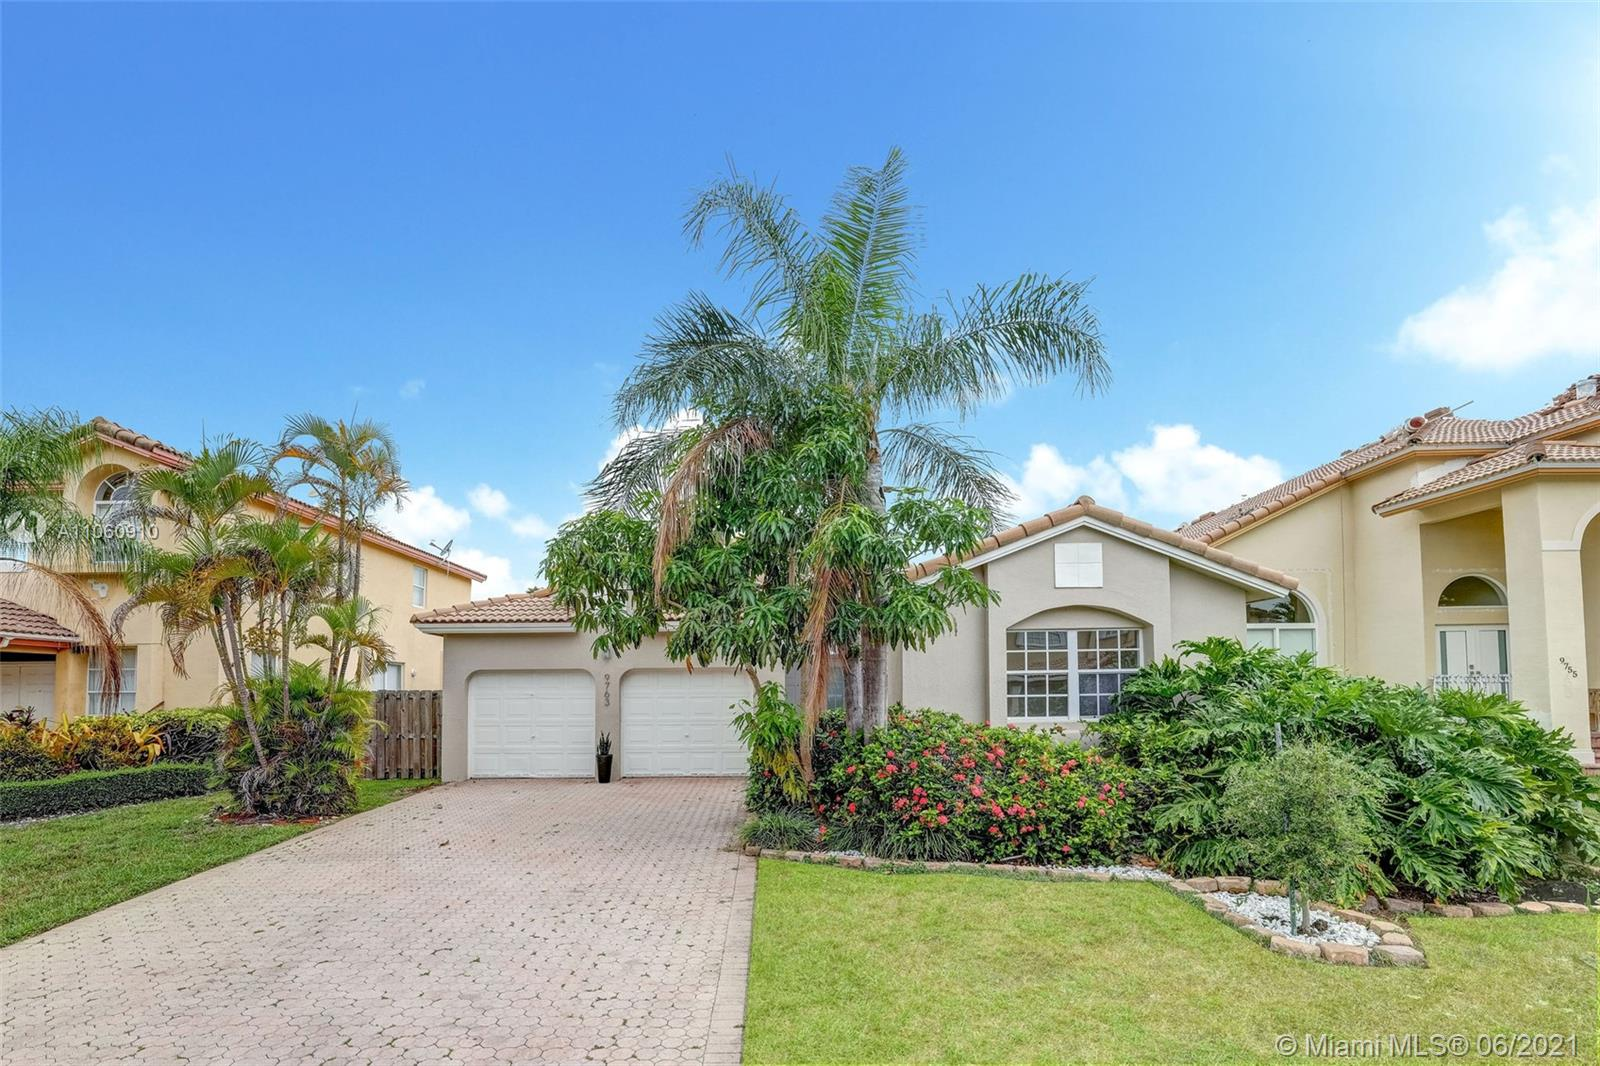 9763 NW 29th St, Doral, Florida 33172